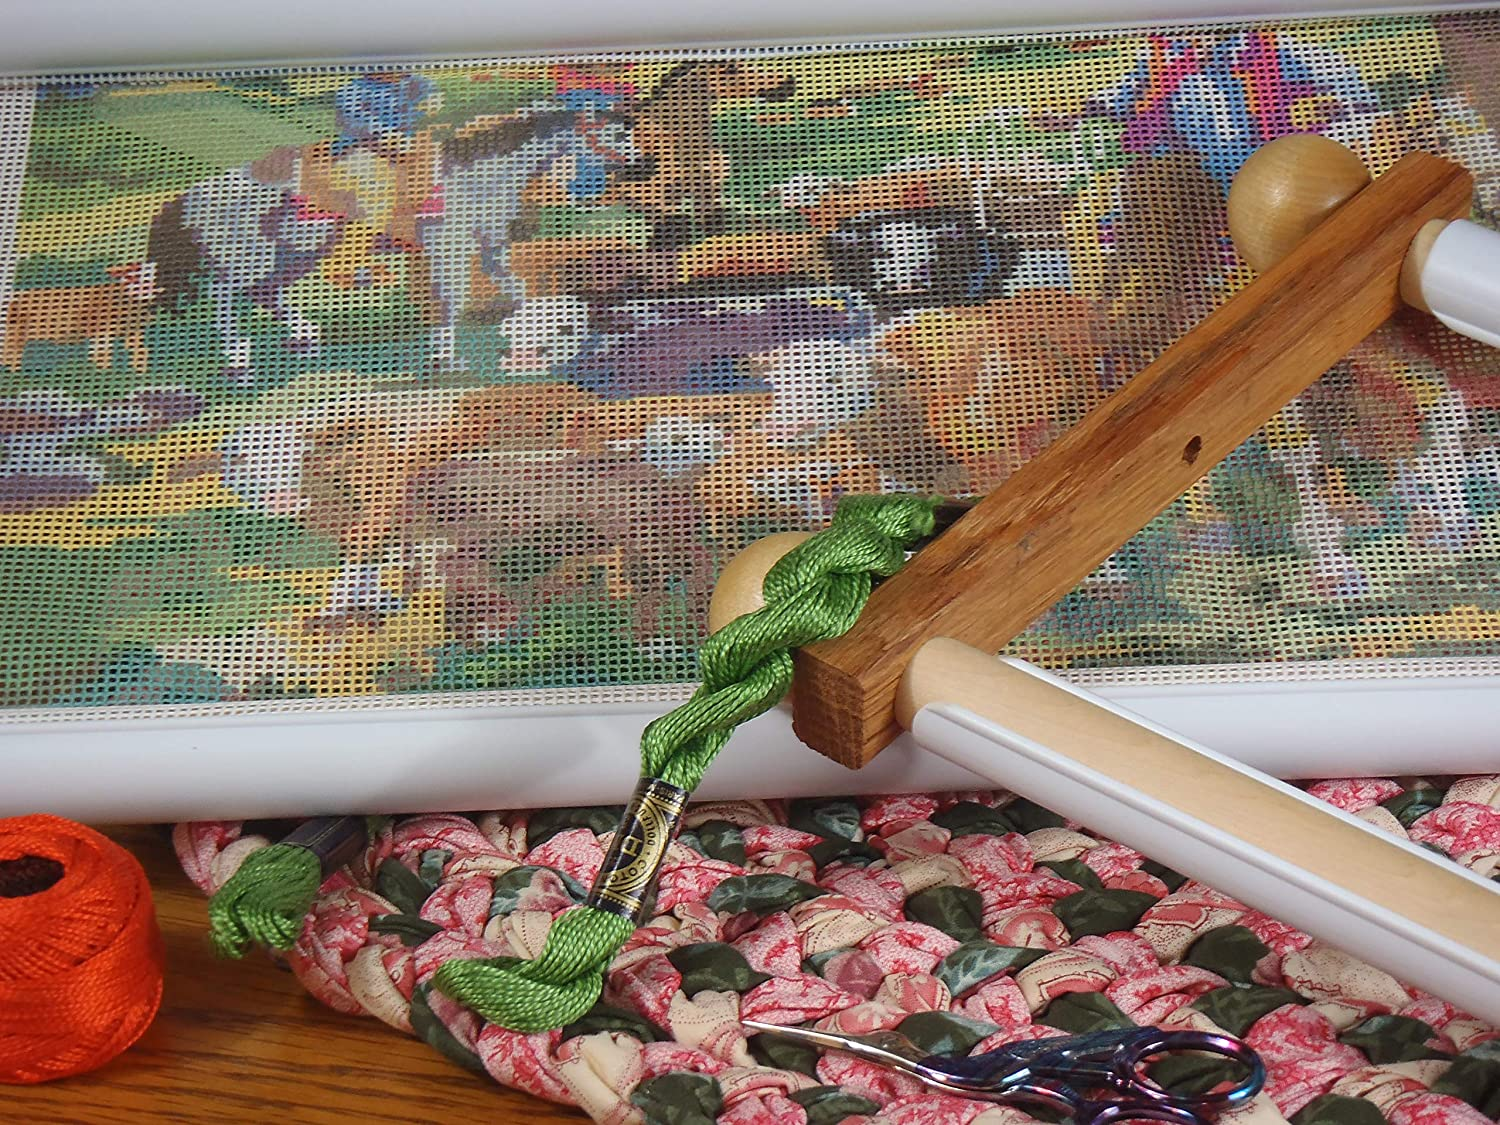 20-Inch Edmunds Handi Clamp Scroll Rods with Clamps